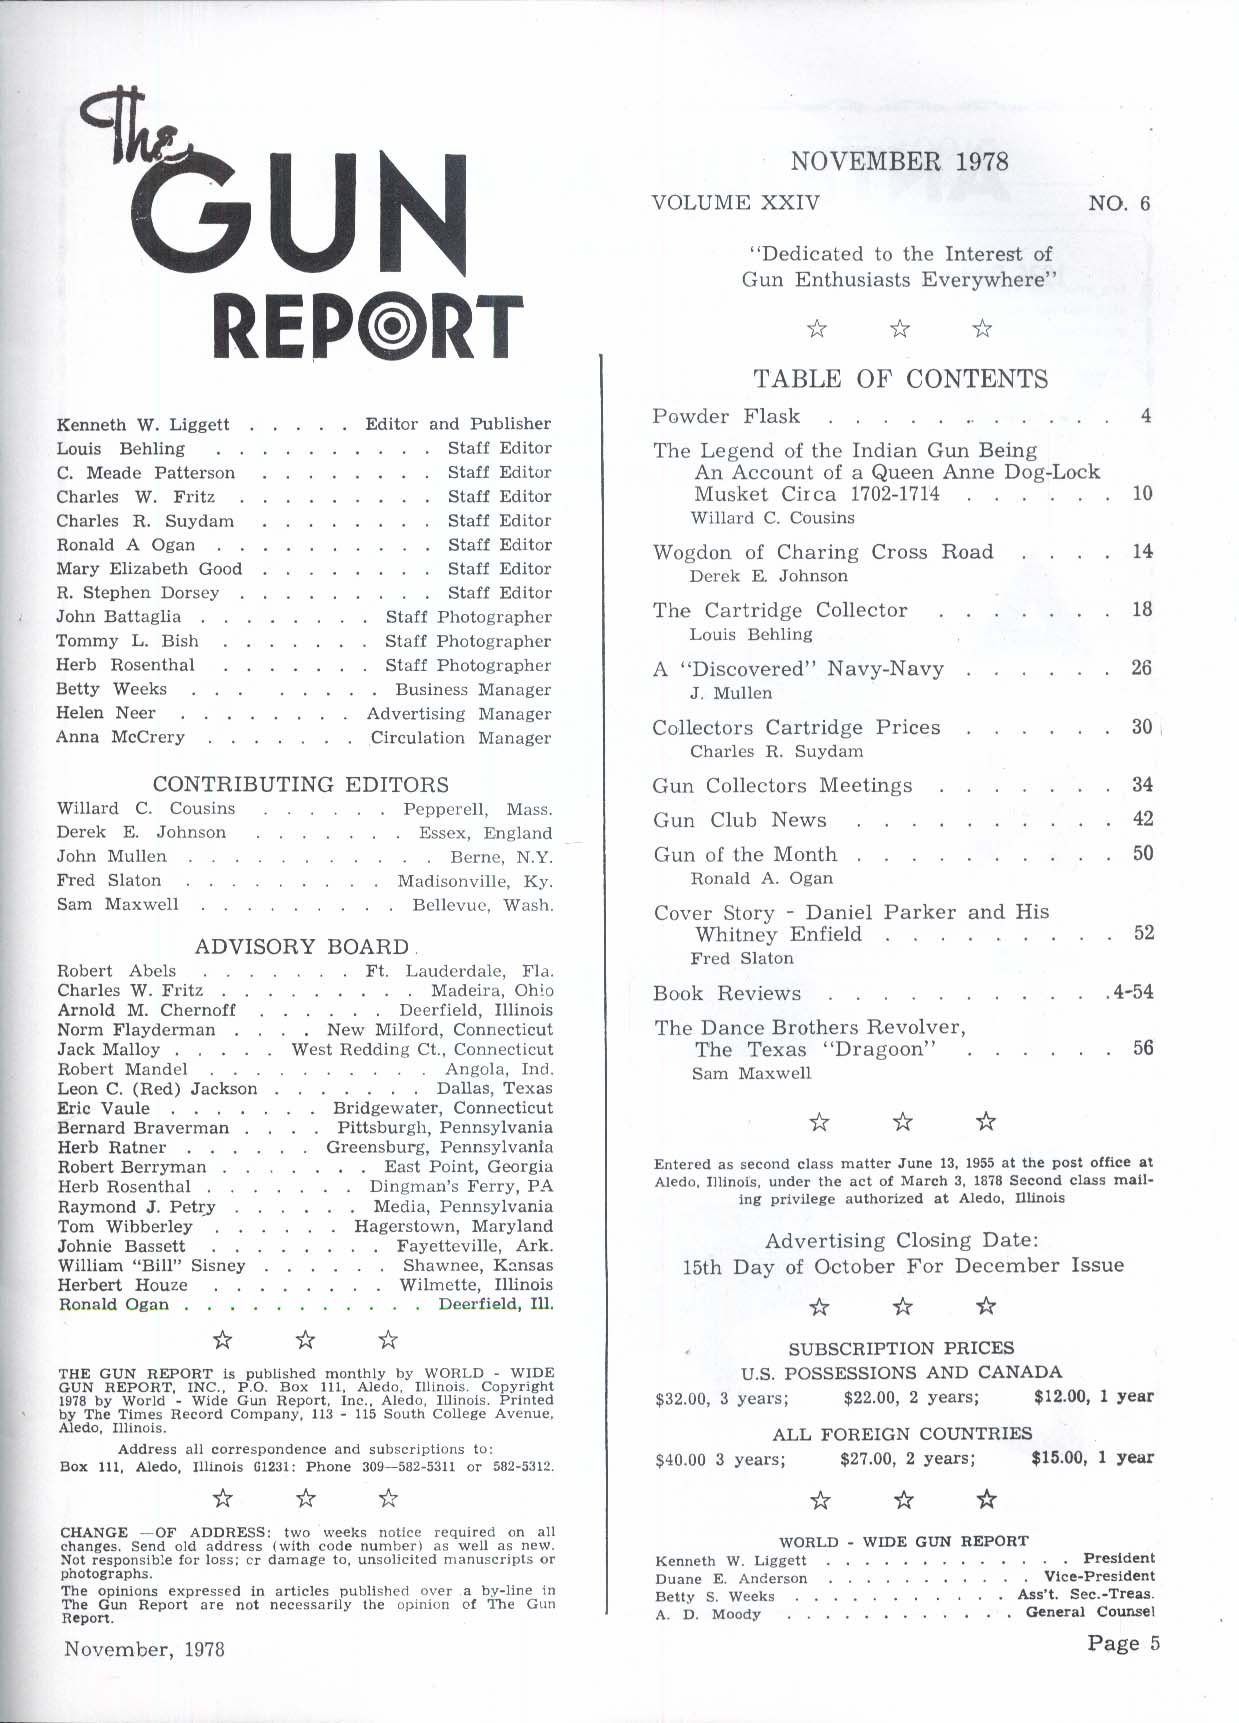 GUN REPORT Indian gun Queen Anne Dog-Lock Musket Whitney-Enfield RIfle 11 1978